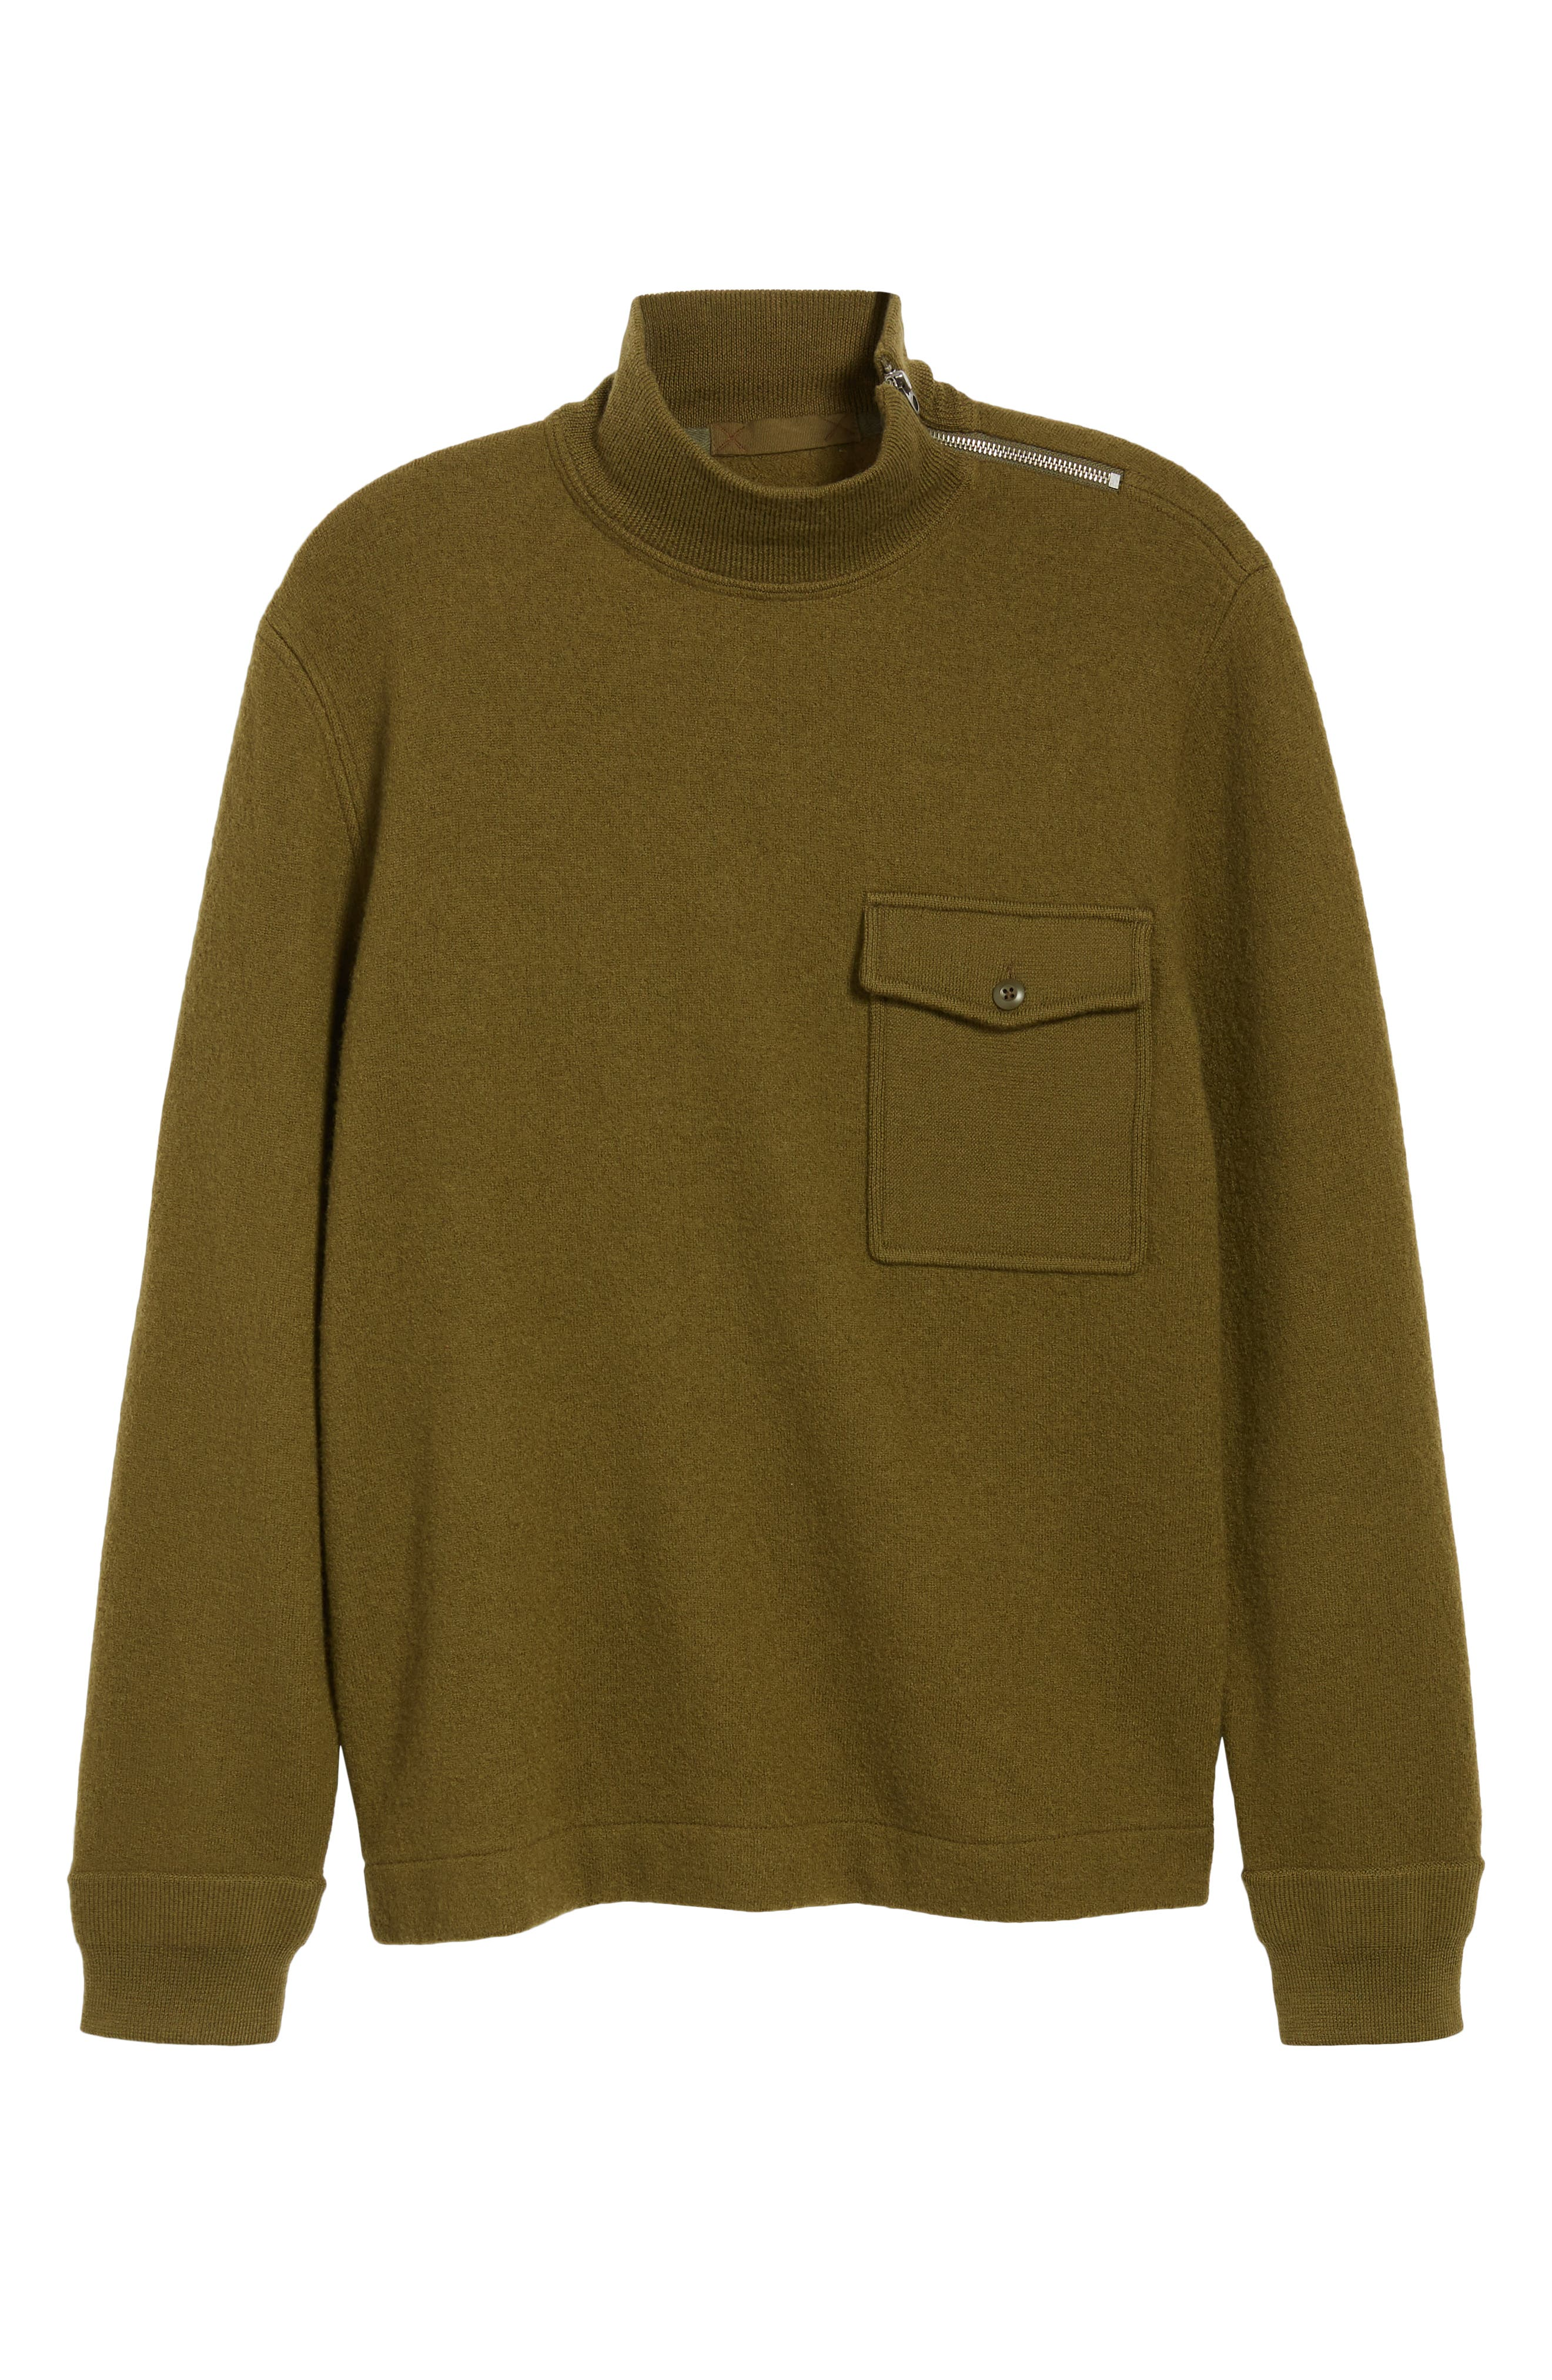 Wallace & Barnes Felted Merino Wool Mock Neck Pullover,                             Alternate thumbnail 6, color,                             ORCHARD GREEN